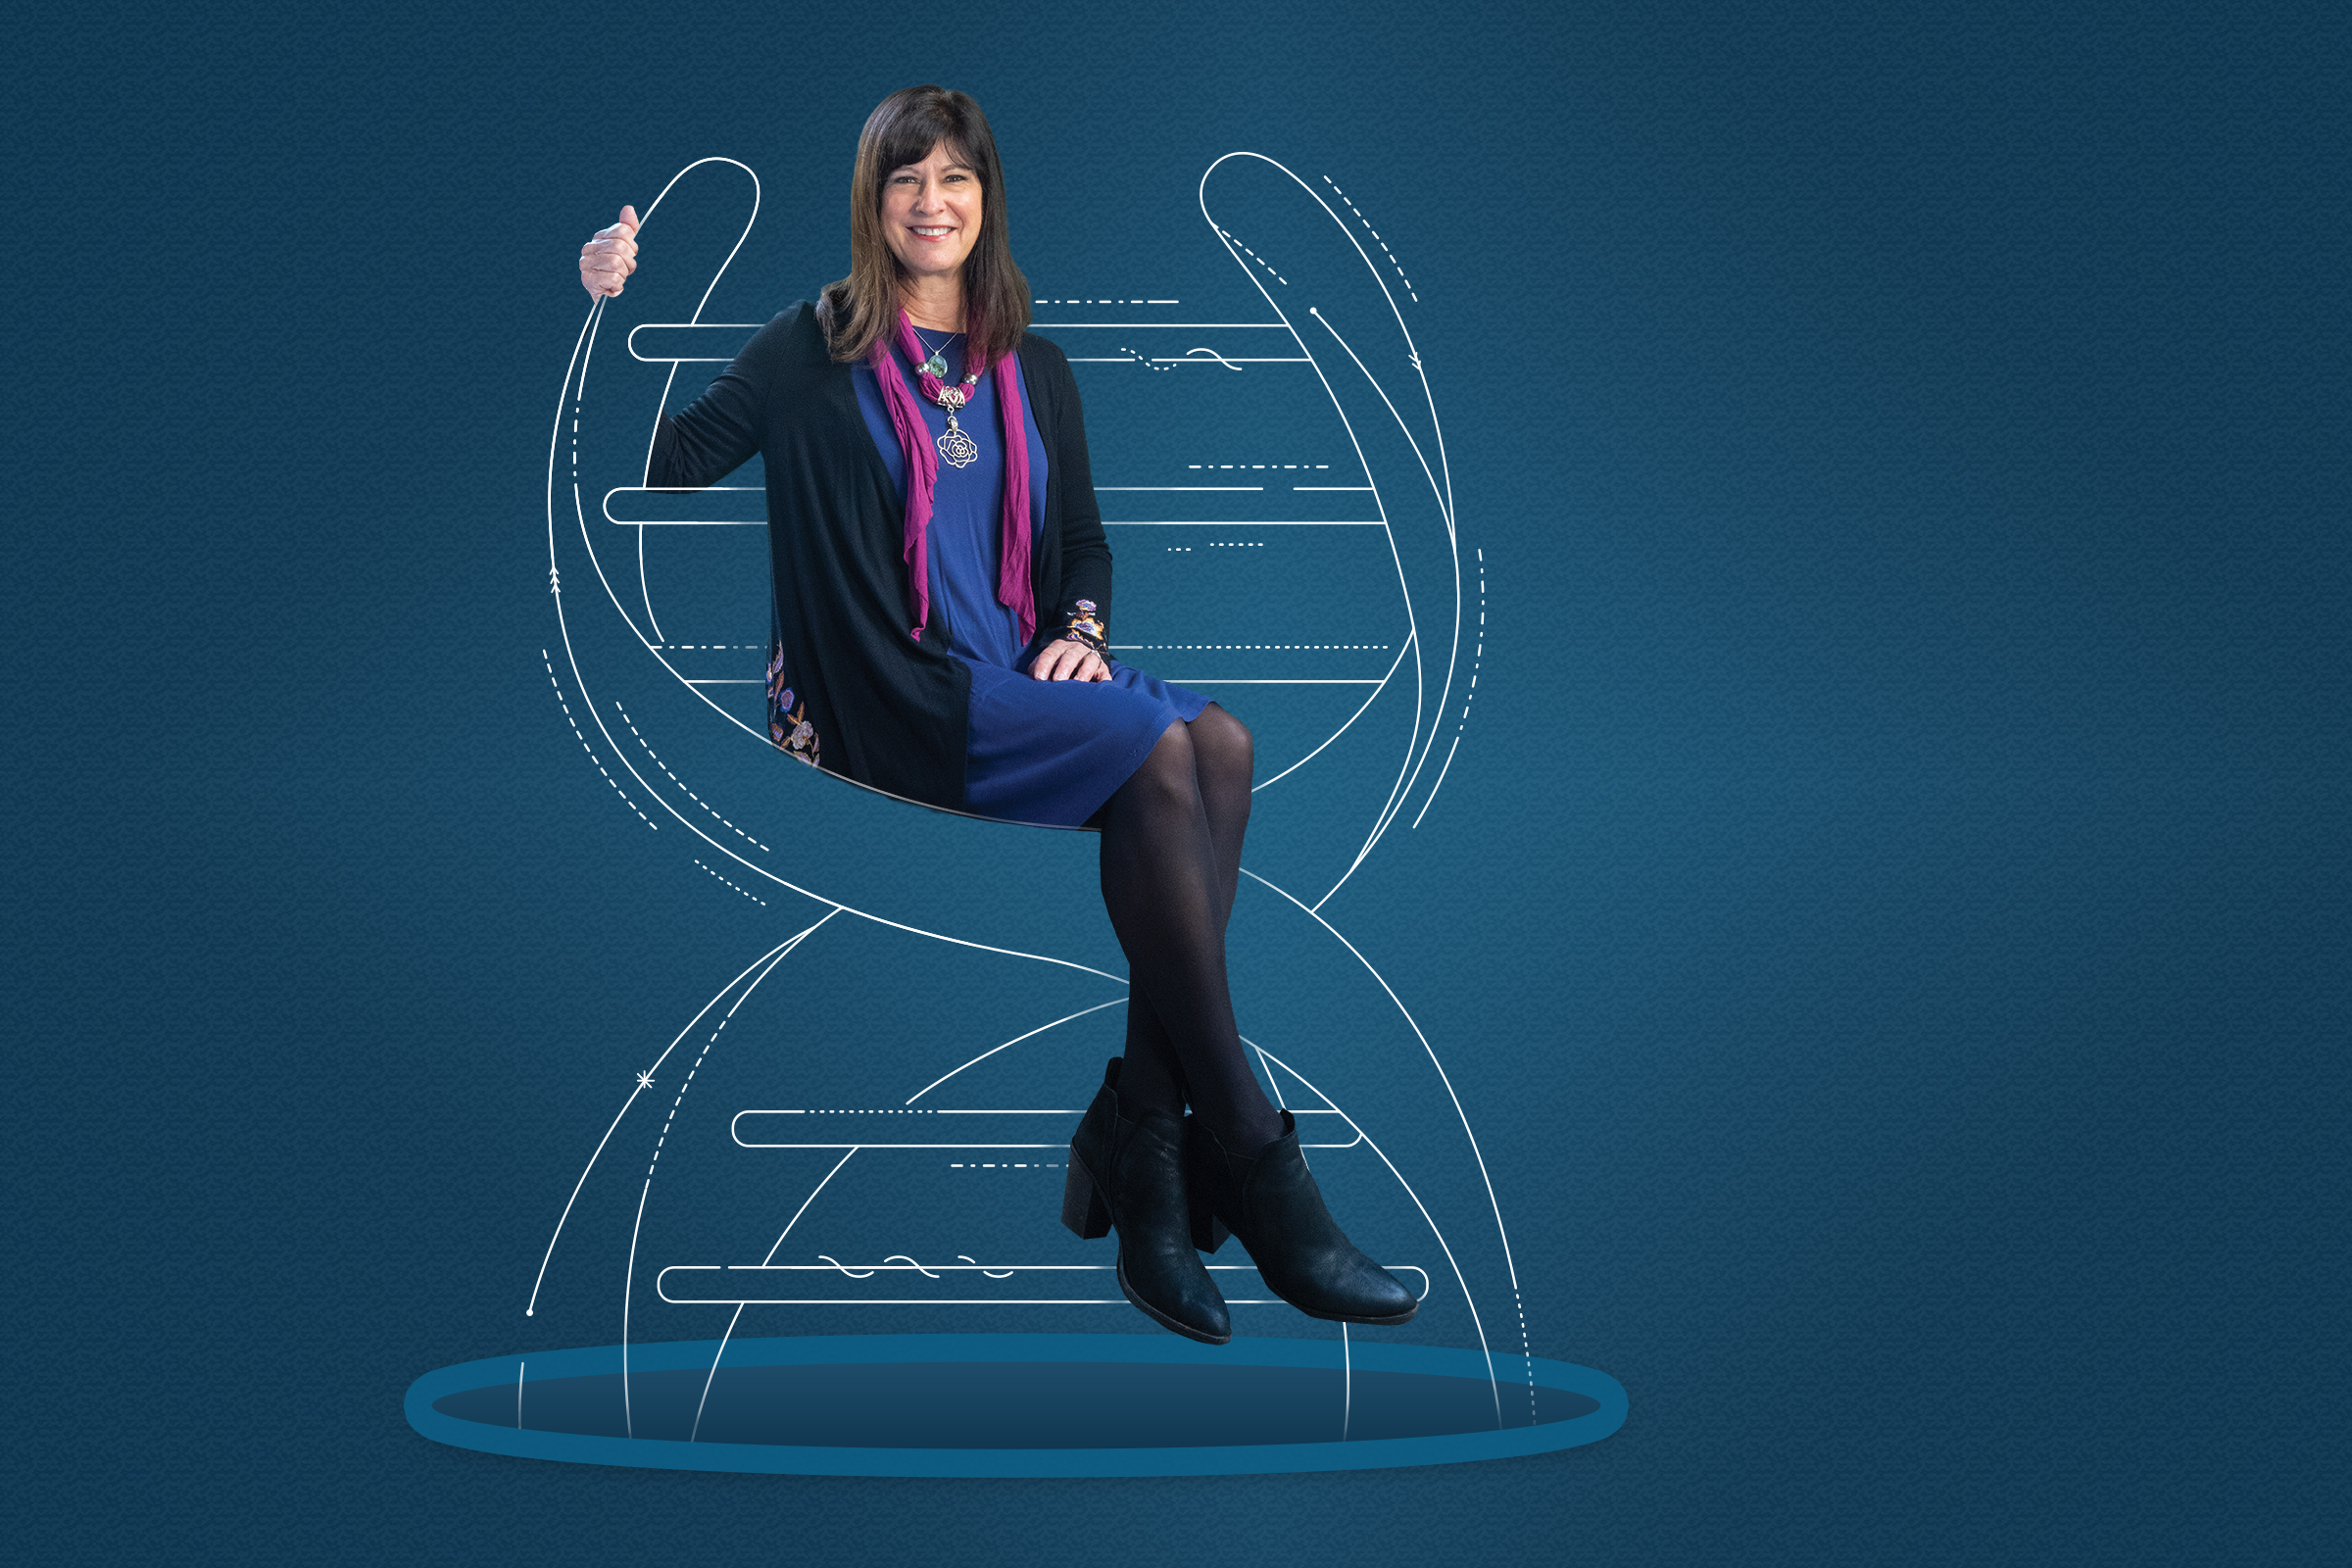 Cover image of Rising Tide Magazine. Leslie Thompson is sitting on a double helix DNA against a blue background.